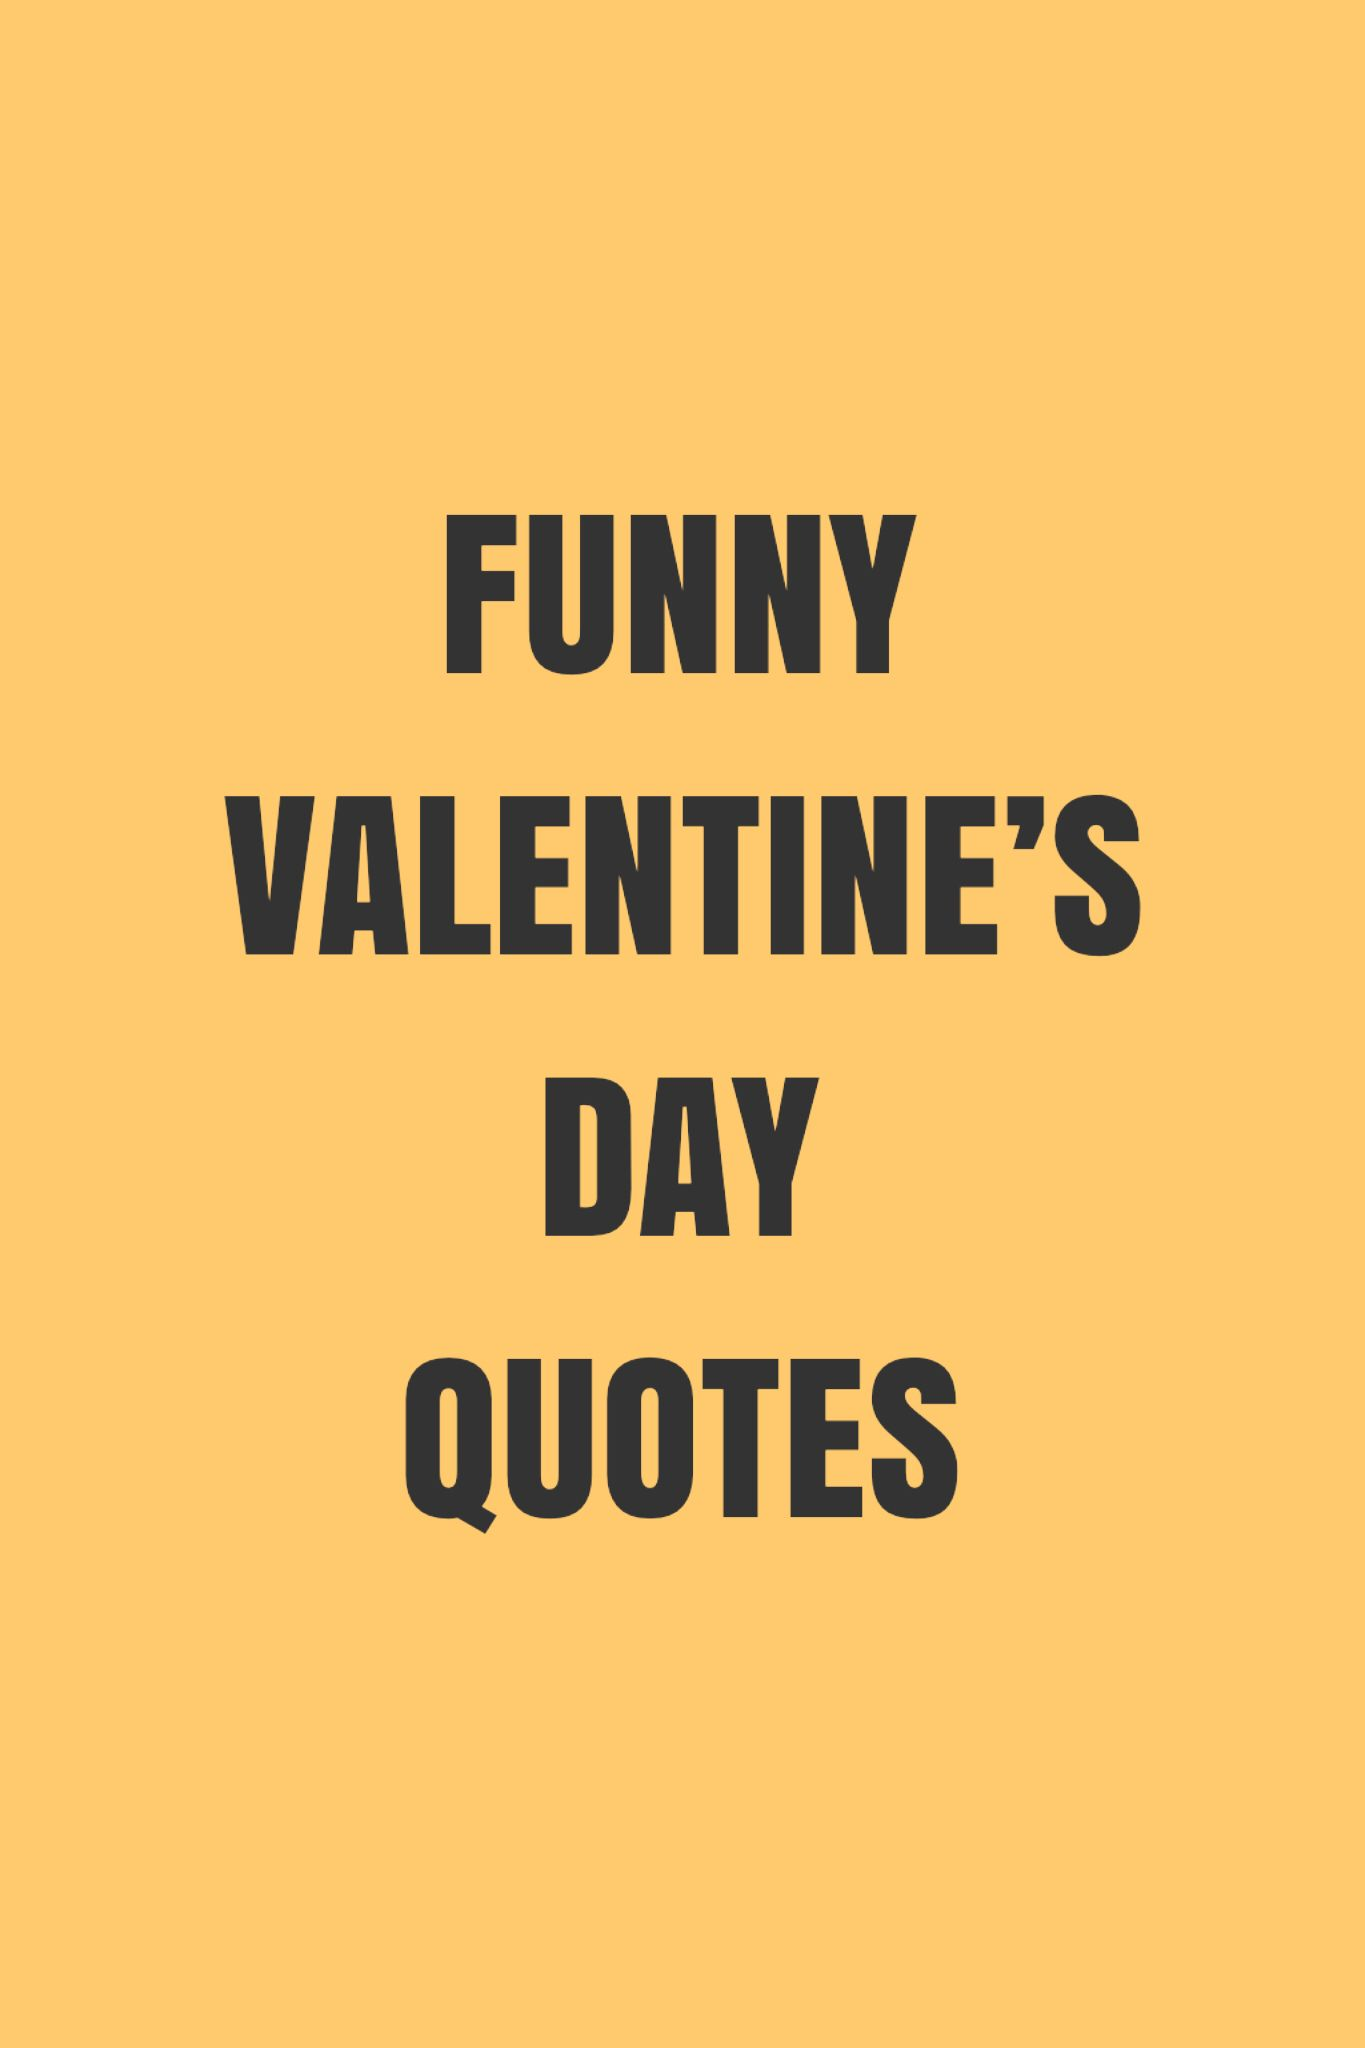 Funny Valentine S Day Quotes Funny Valentines Day Quotes Valentine S Day Quotes Funny Valentine